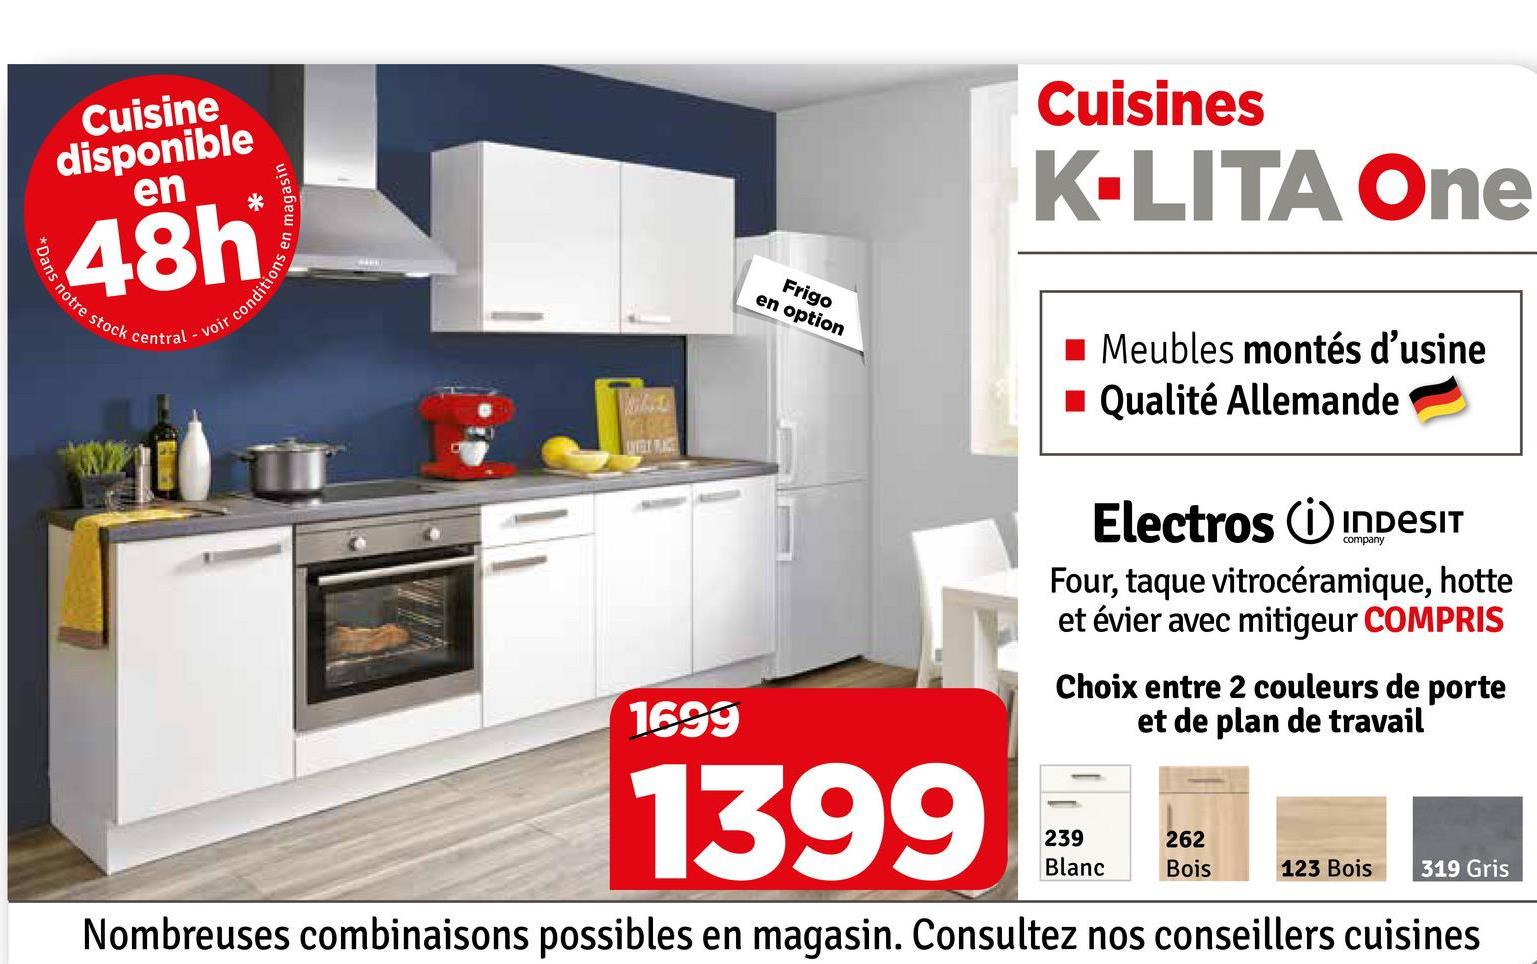 Isolation Entre Four Et Frigo Promotions Frigo Myshopi